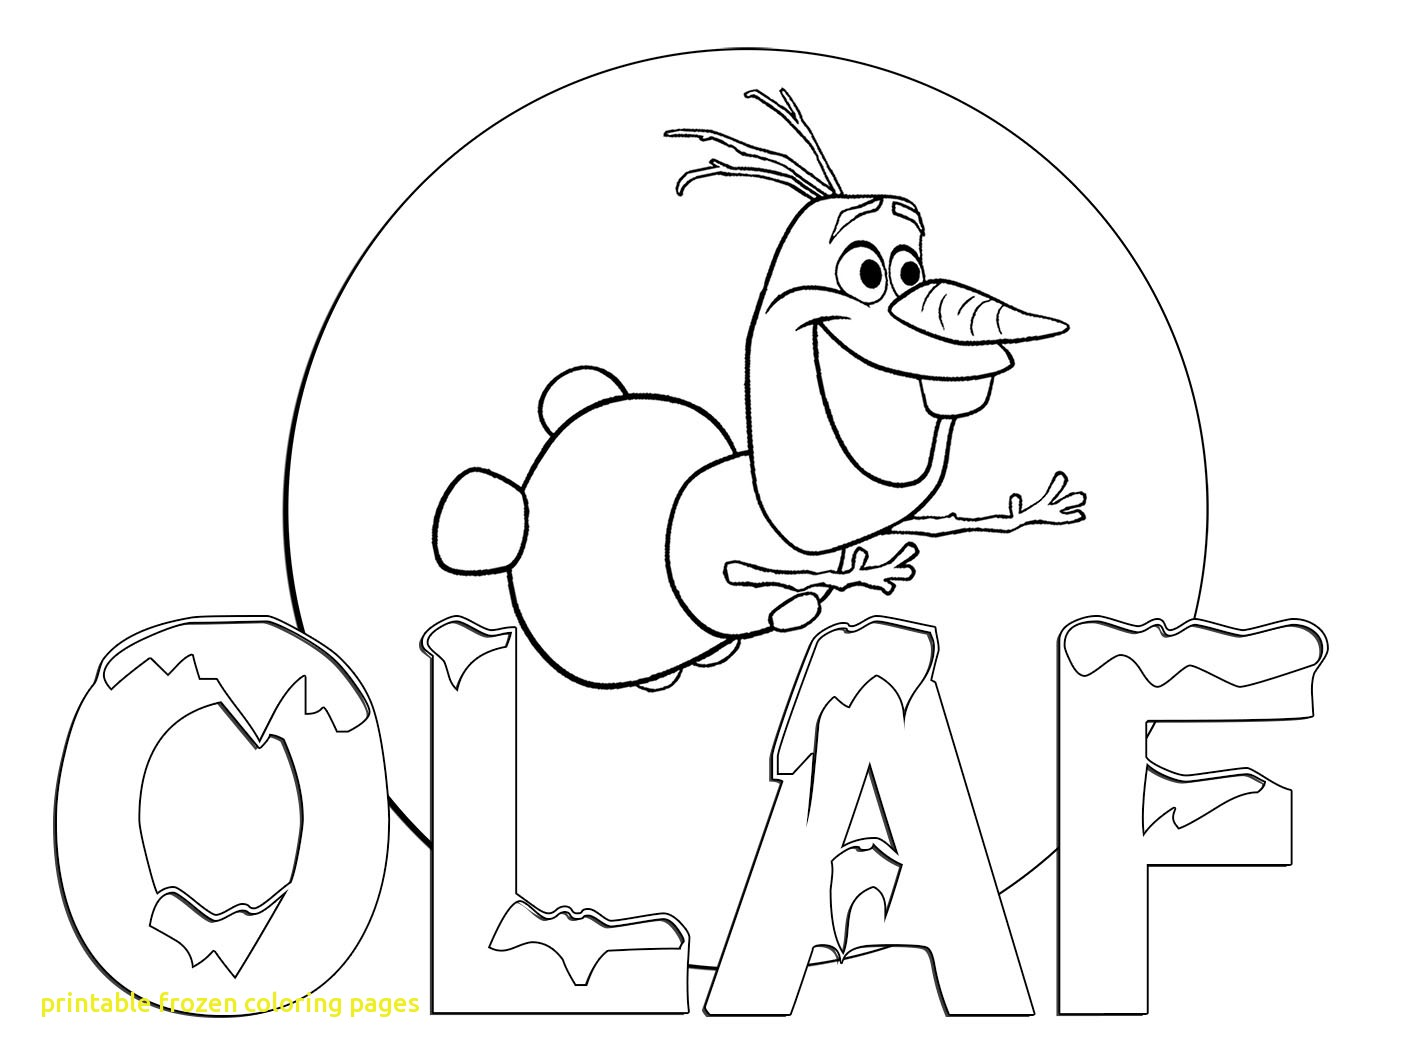 1414x1060 Printable Frozen Coloring Pages With Olaf The Snowman From Frozen